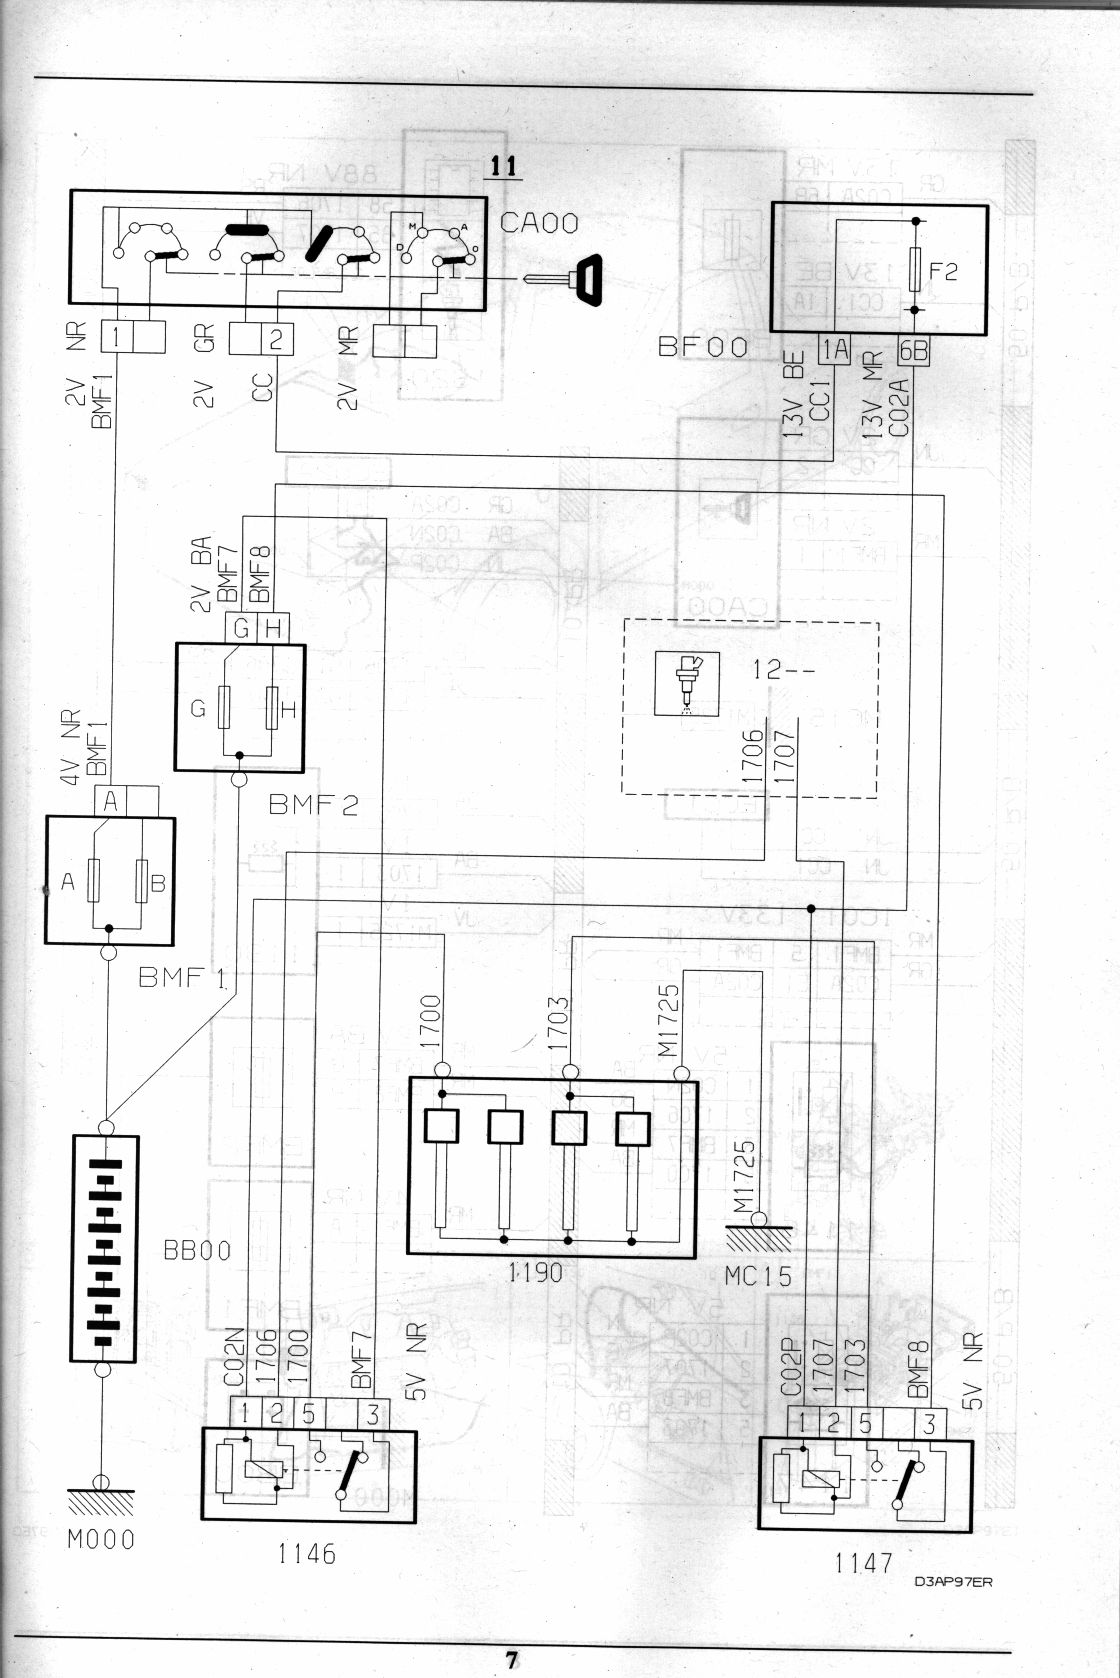 WRG-2891] Citroen Xsara Wiring Diagrams Download on john deere parts diagrams, john deere radio wiring diagram, john deere ignition switch wiring, john deere diagnostic codes, john deere parts specifications, john deere solenoid schematics, john deere solenoid wiring, john deere maintenance schedule,